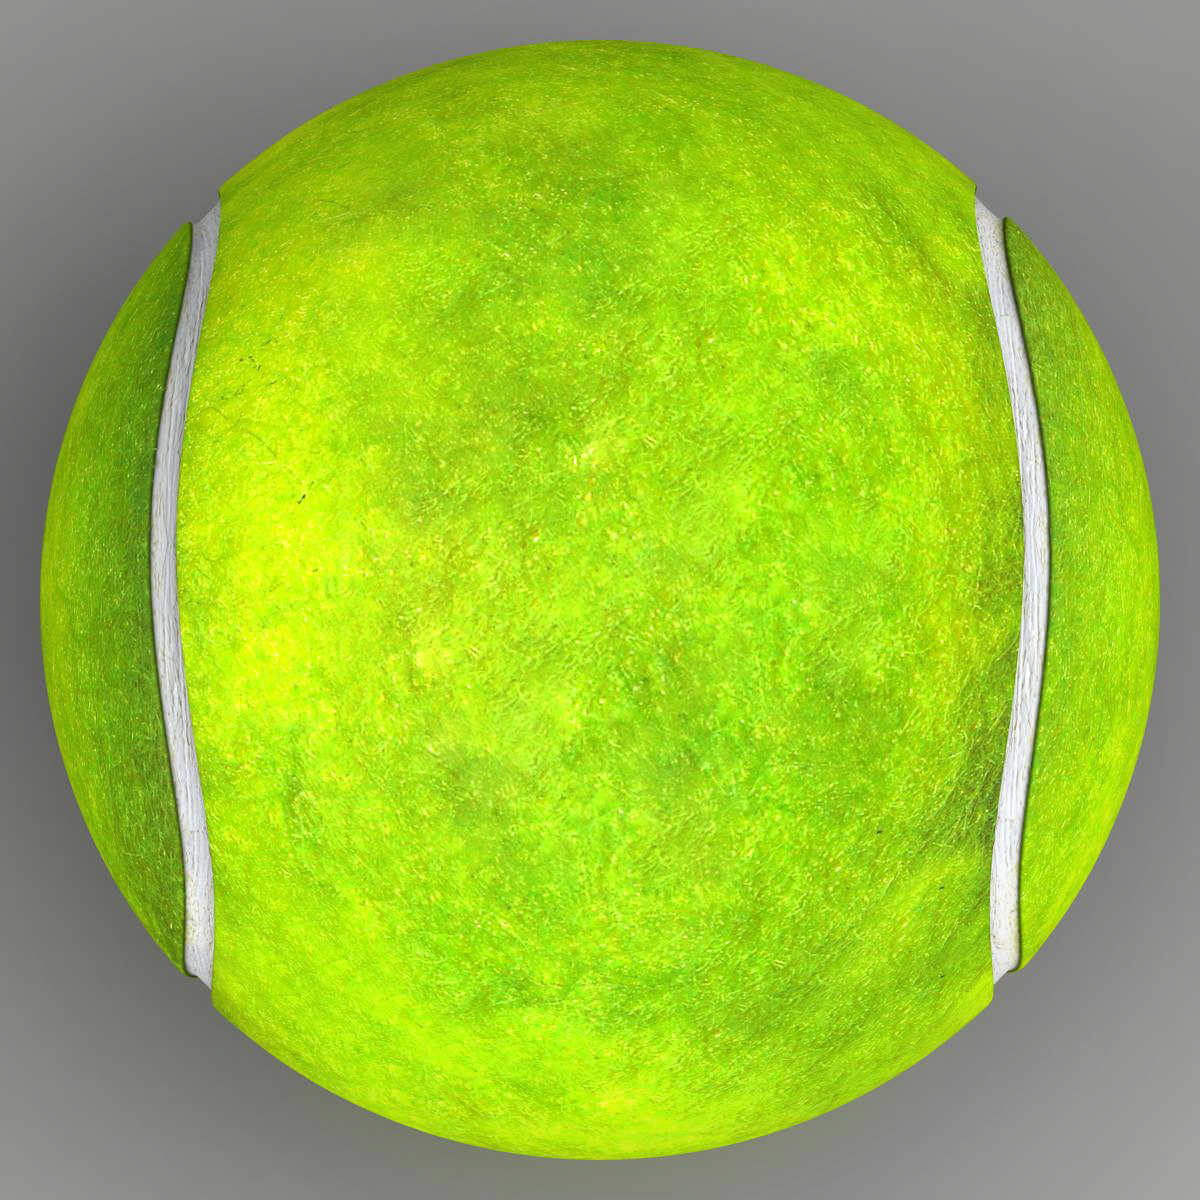 tennis ball lowpoly 3d model 3ds max fbx c4d ma mb obj 166099